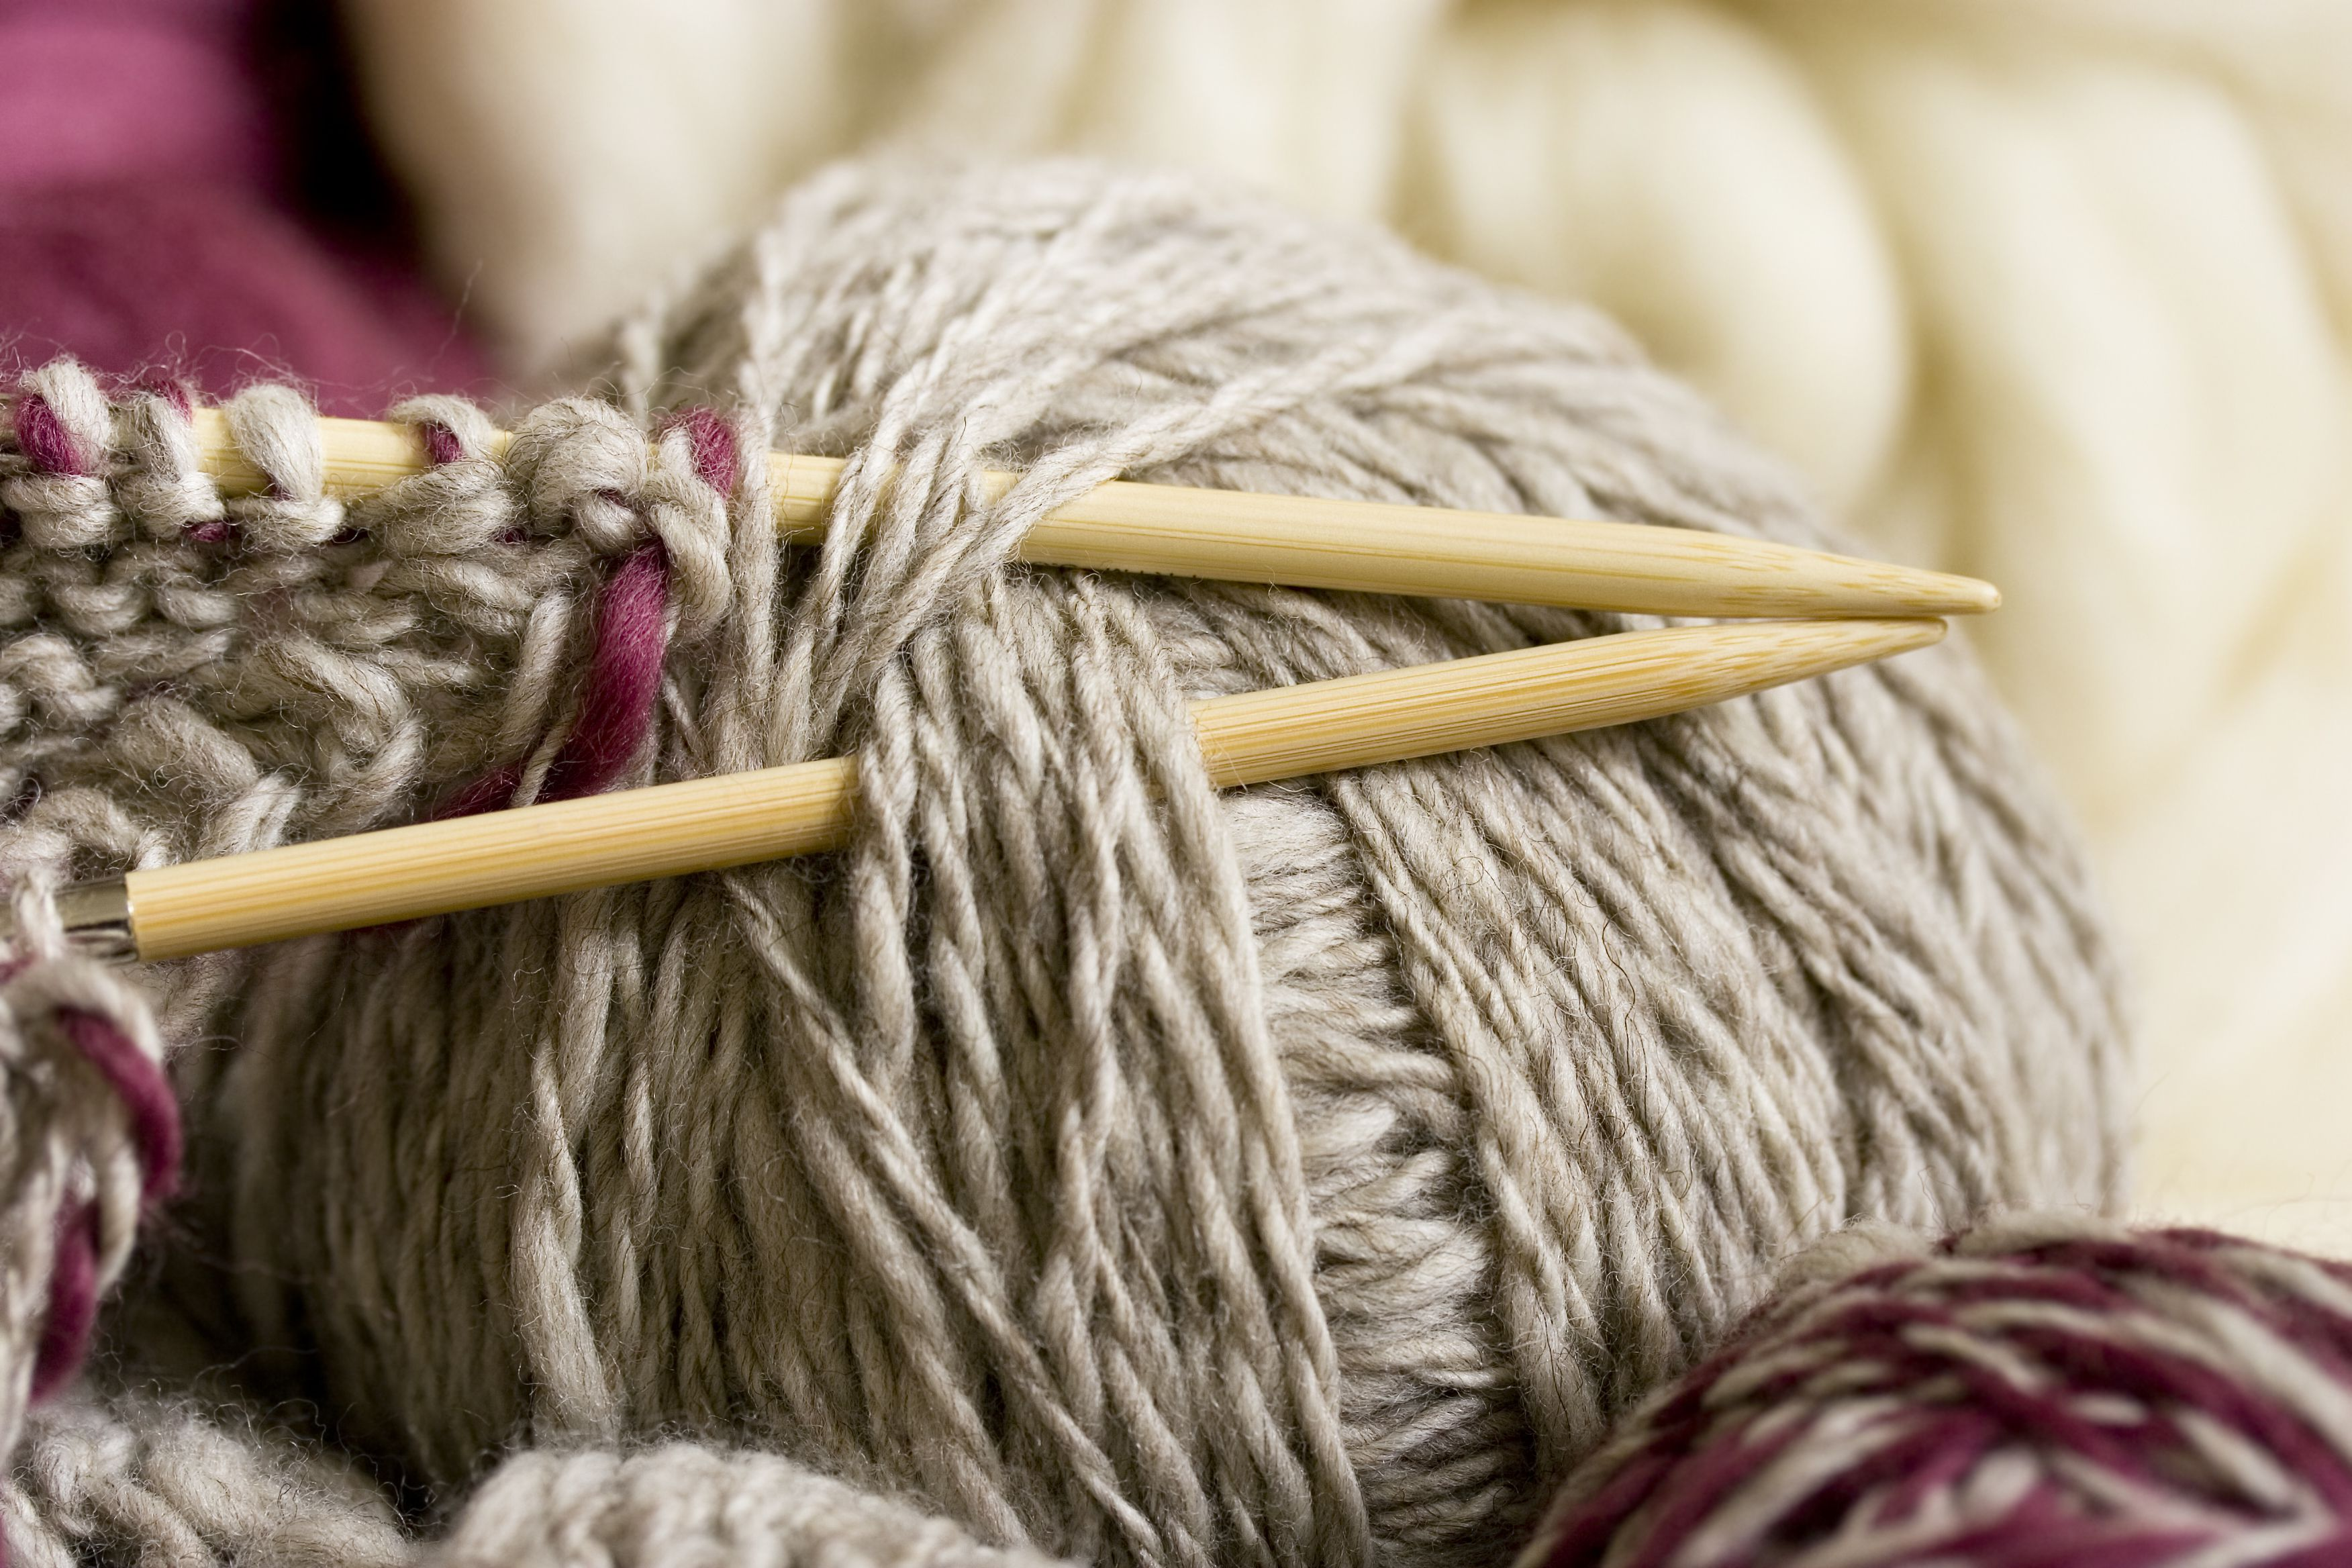 Knitting Work From Home : Knitting with bamboo needles